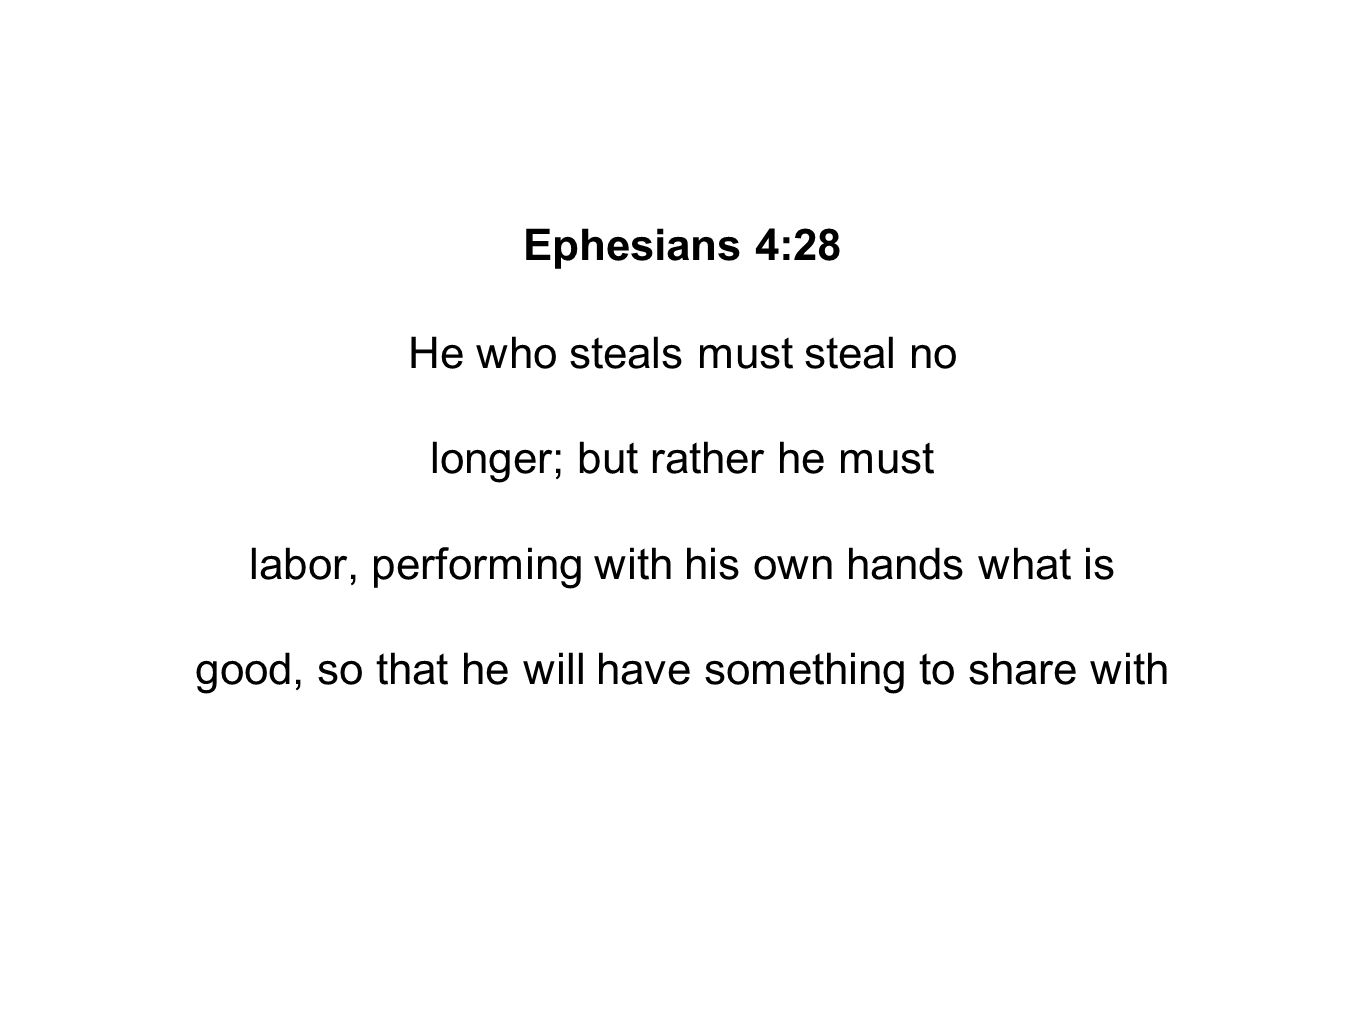 Ephesians 4:28 He who steals must steal no longer; but rather he must labor, performing with his own hands what is good, so that he will have something to share with